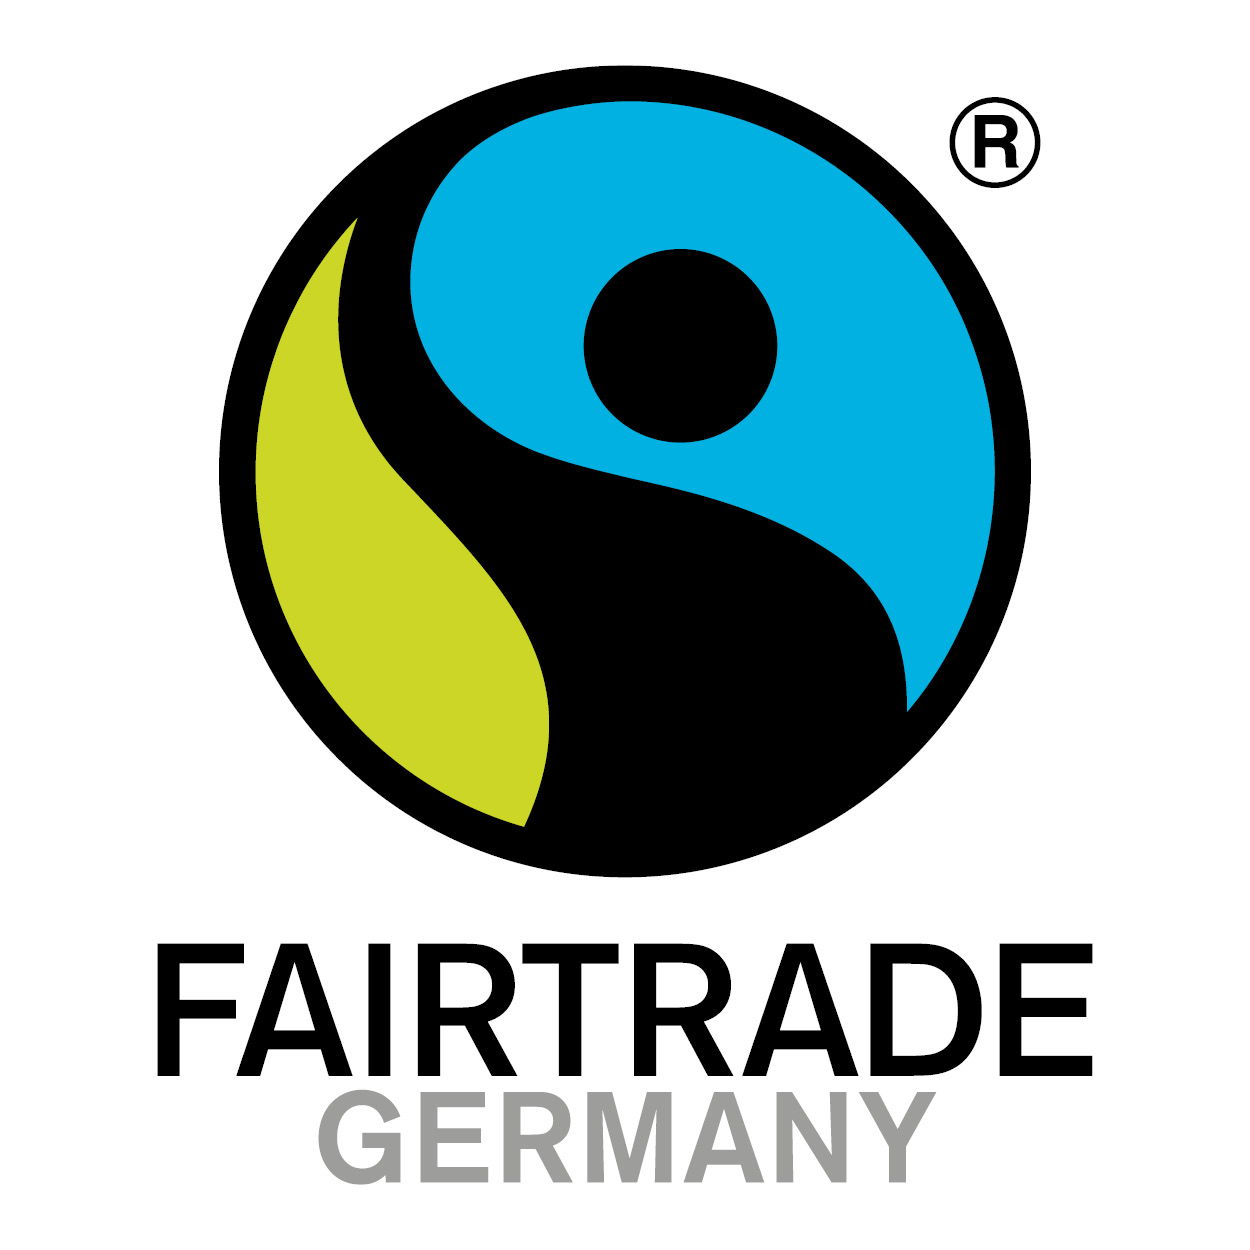 Thank you for attending the 7th Africa Fairtrade Convention (AFC) 2021